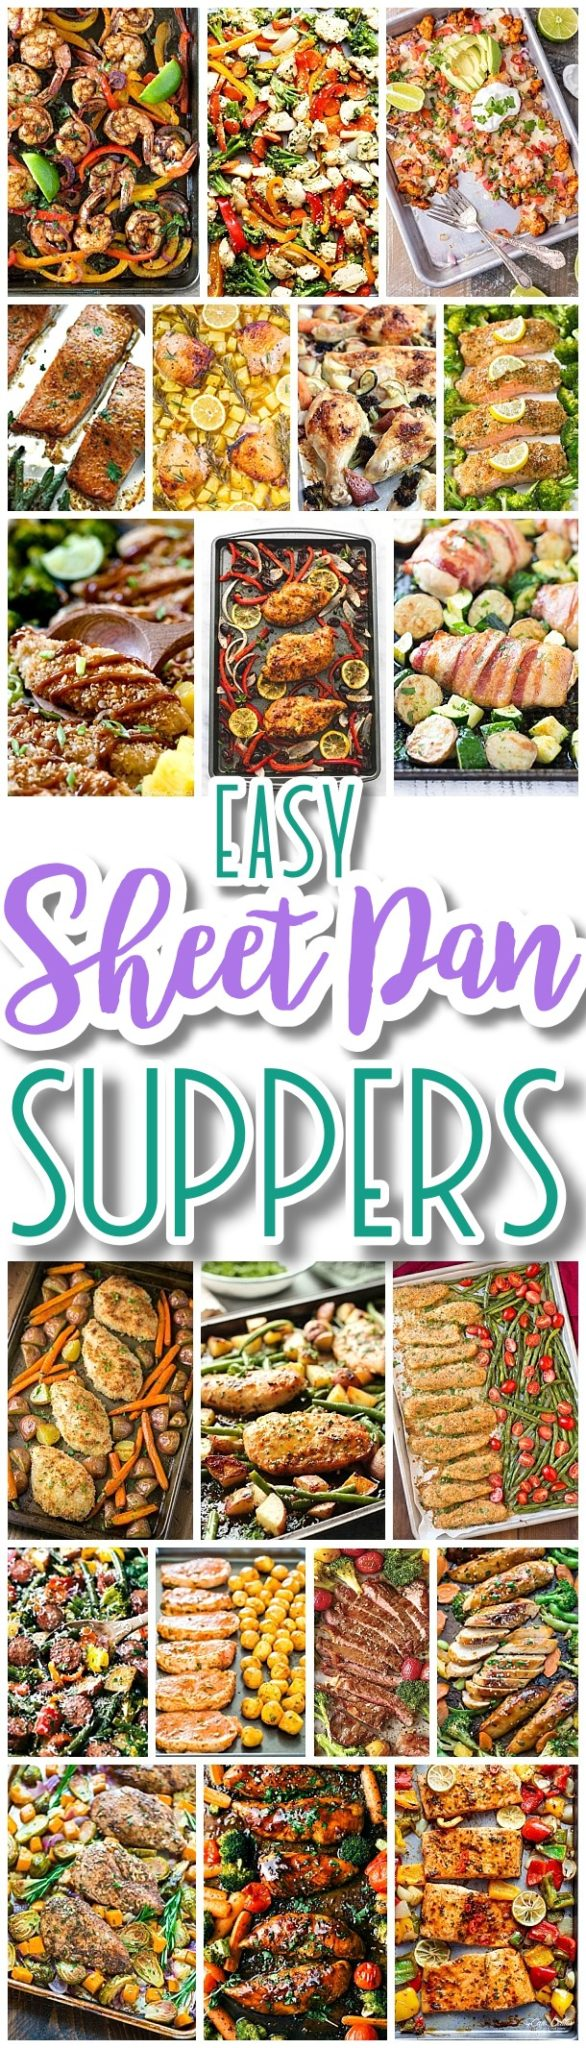 Quick and easy suppers recipes